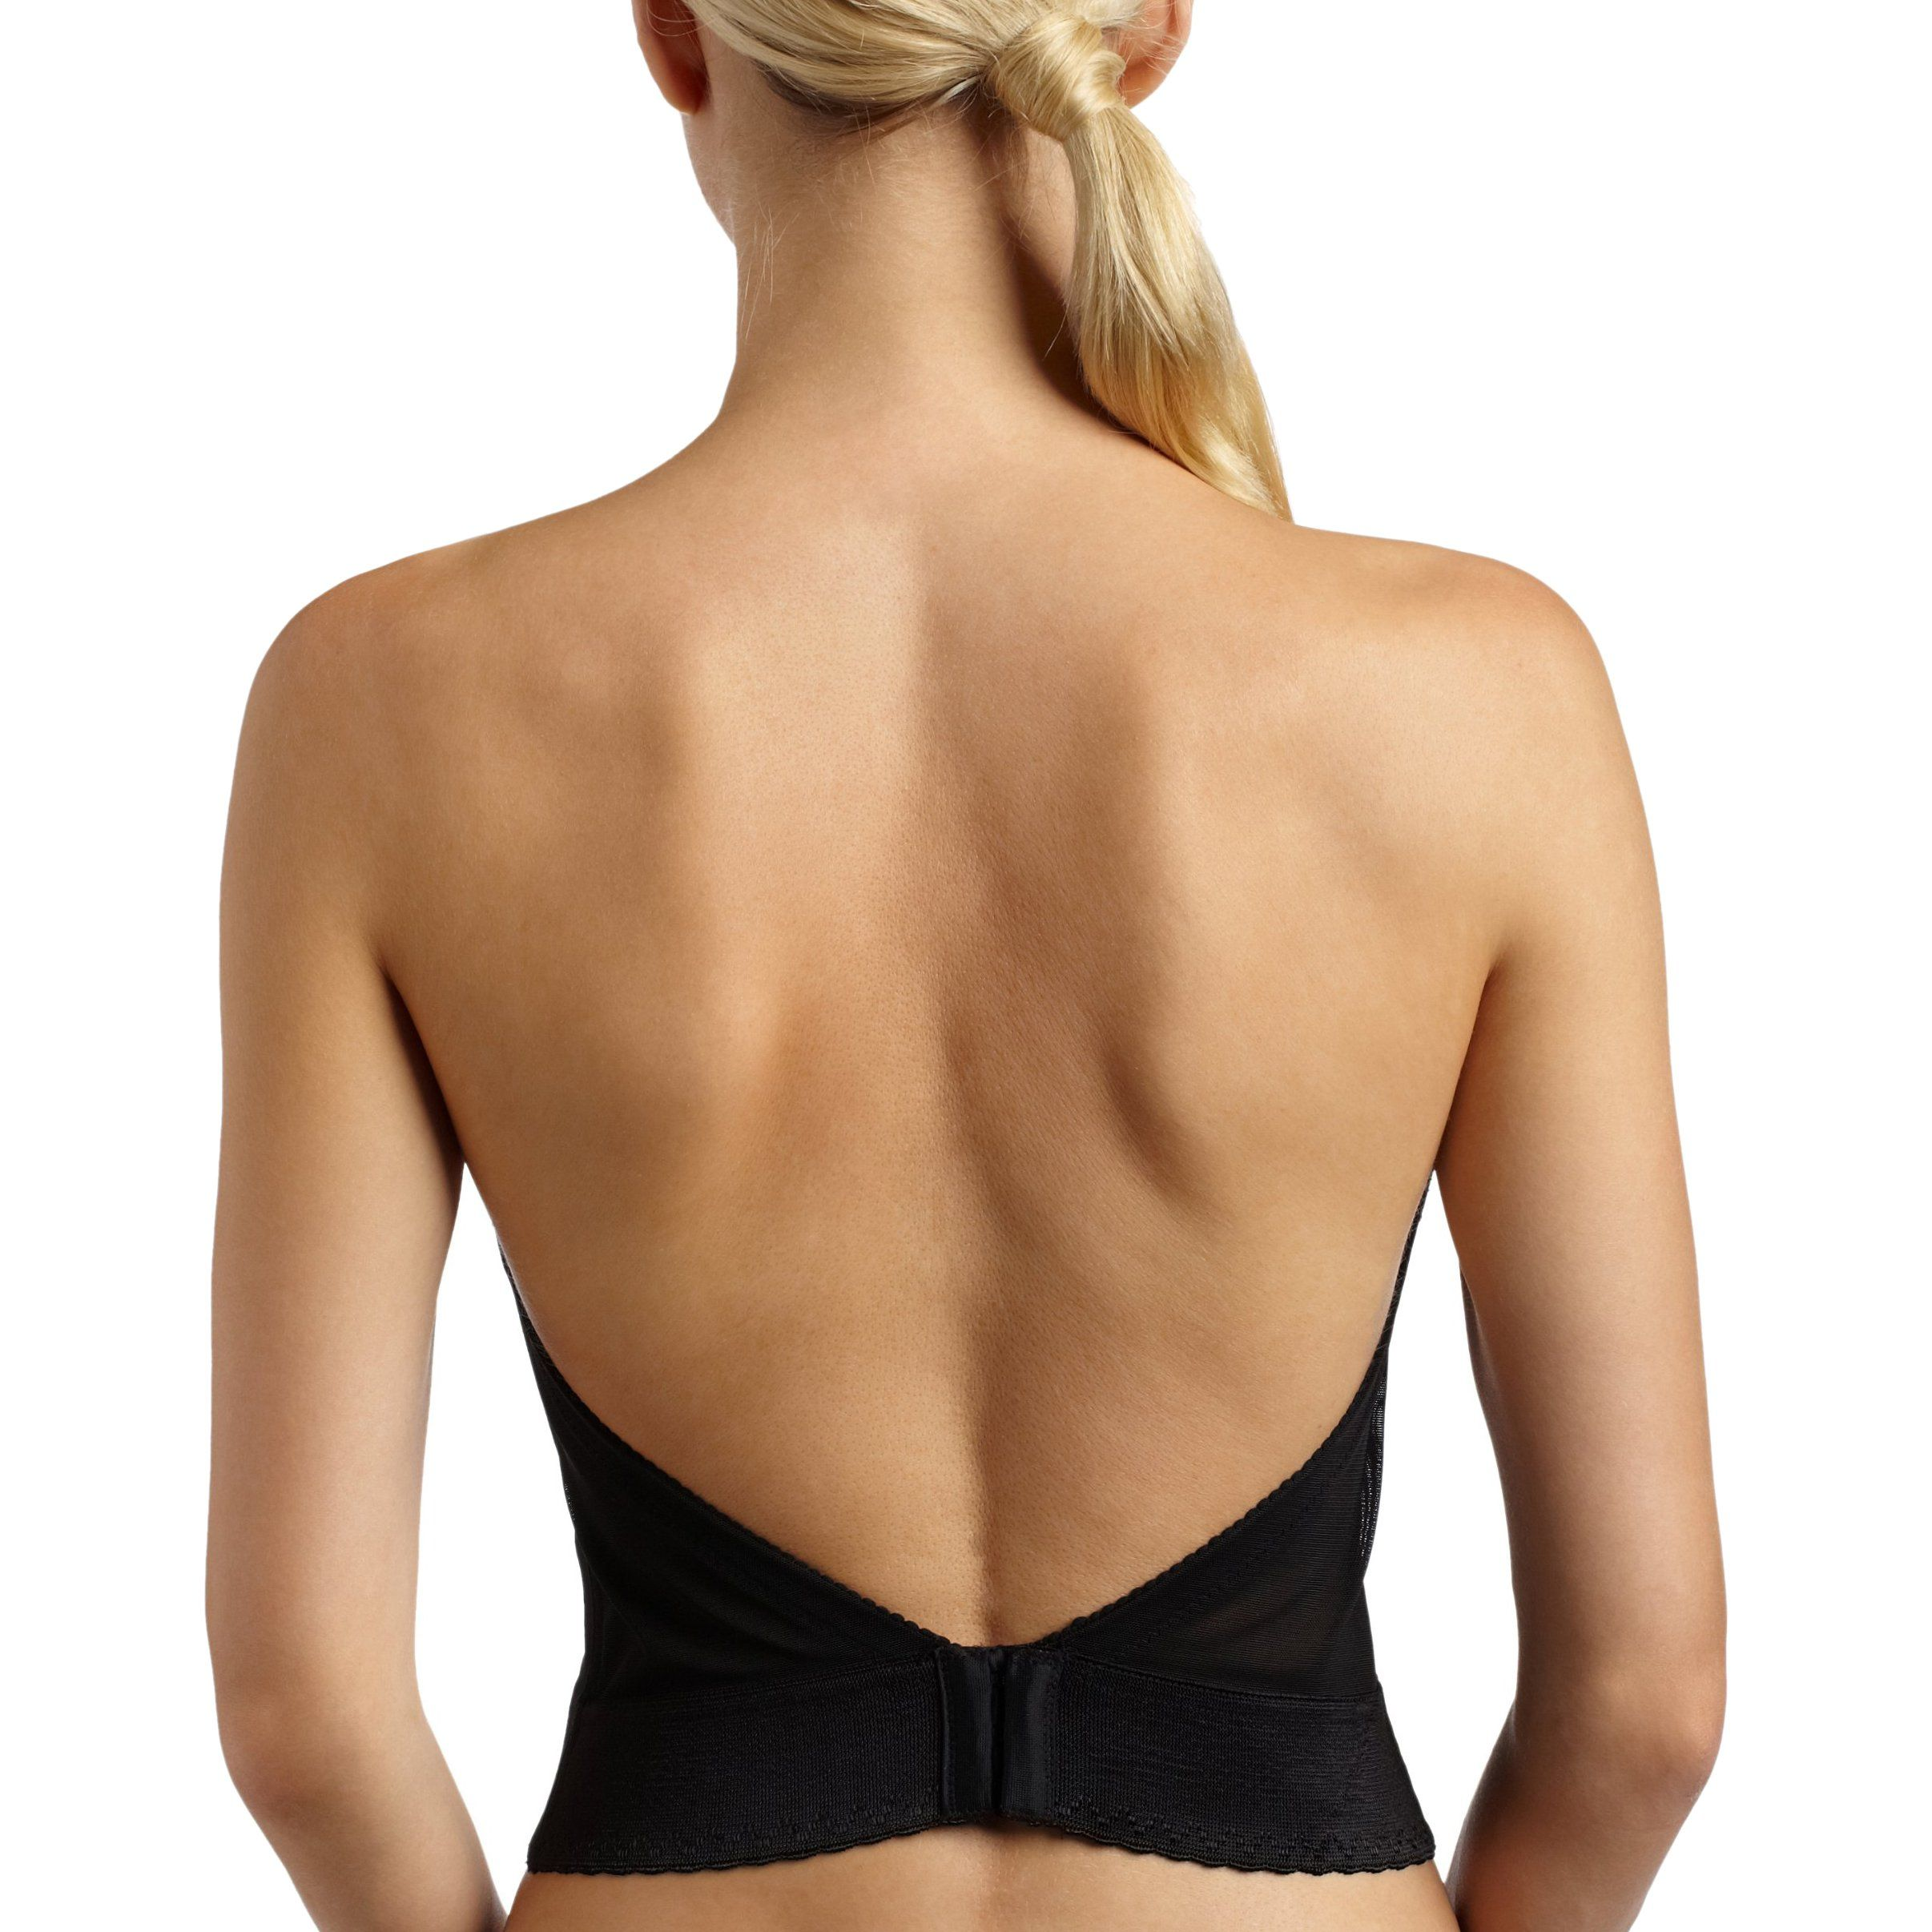 Carnival Women S Invisible Plunge Longline Amazon I Searched Everywhere For A Low Back Or Clear Back Bra For A H Bras For Backless Dresses Women Dress Bra [ 2412 x 2412 Pixel ]